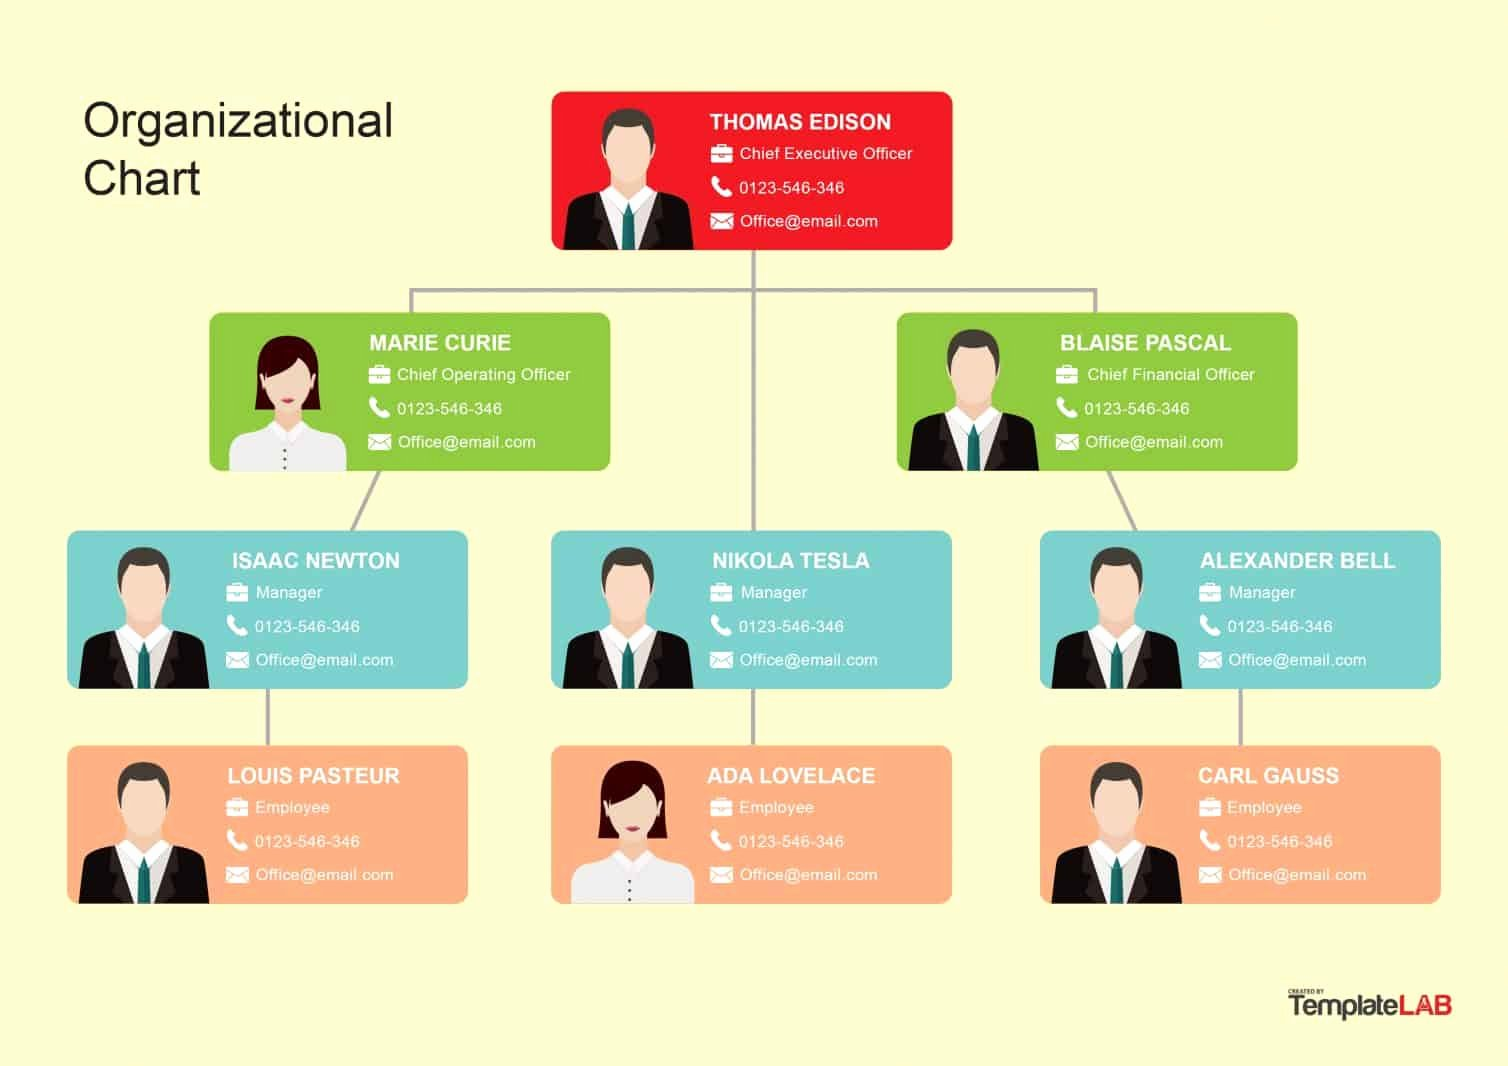 Org Chart Template Word Inspirational 40 organizational Chart Templates Word Excel Powerpoint